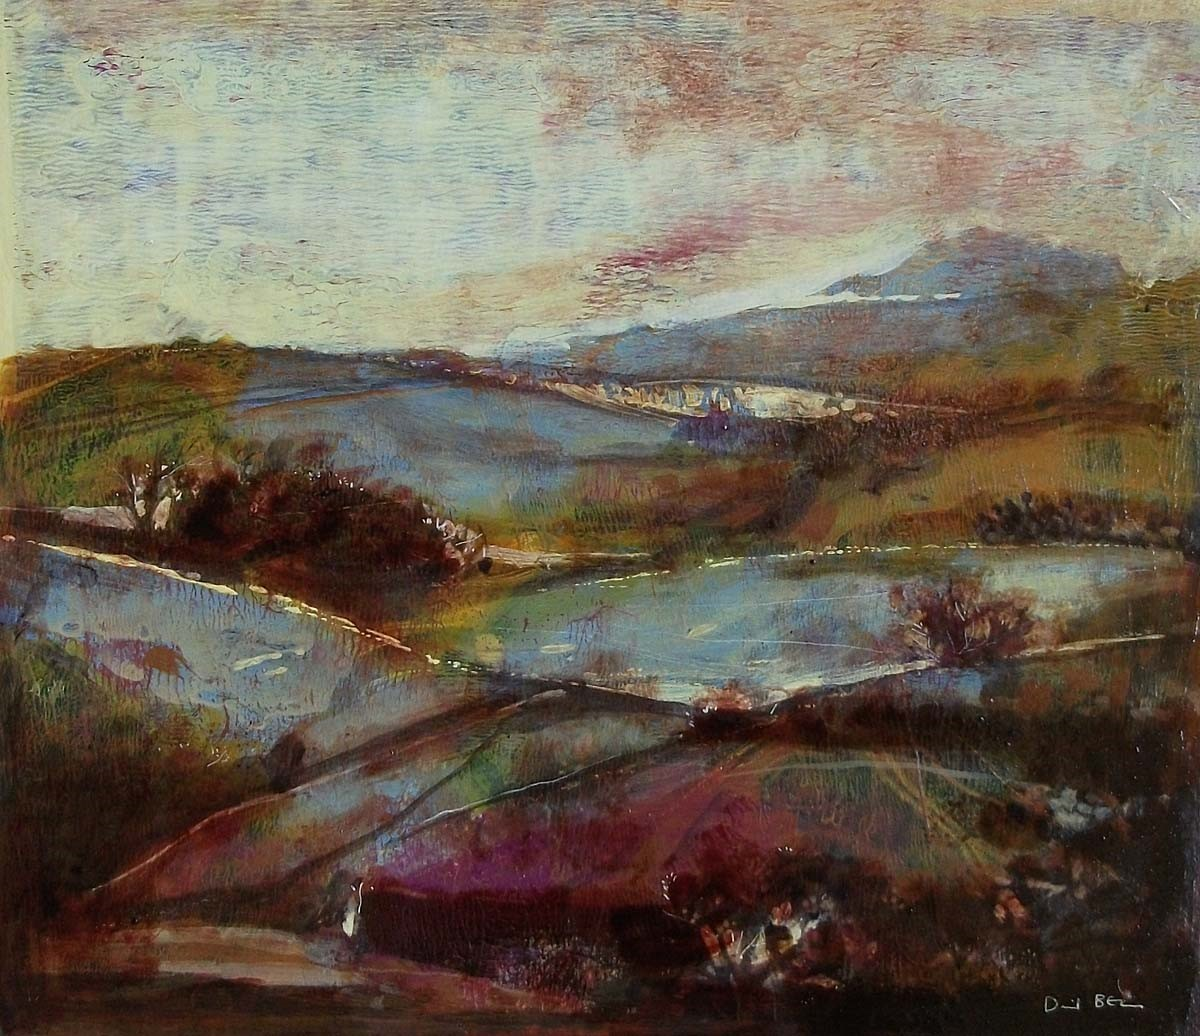 View across the Moors by David Bez